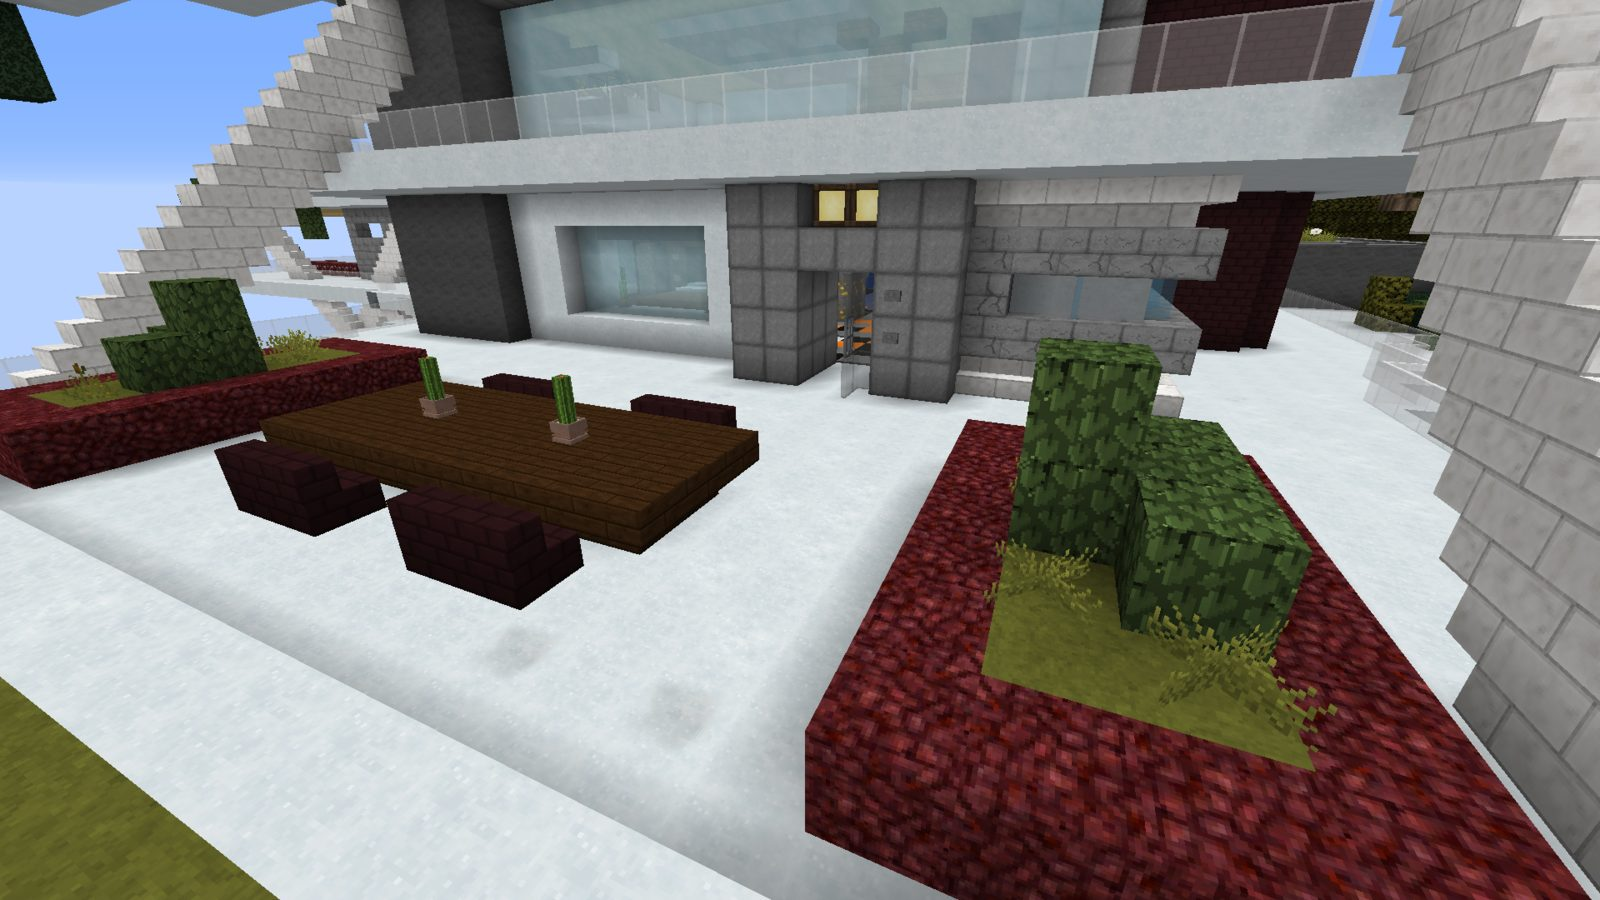 Monsterley Resource Pack for Minecraft 1 13 - 32x32 resource